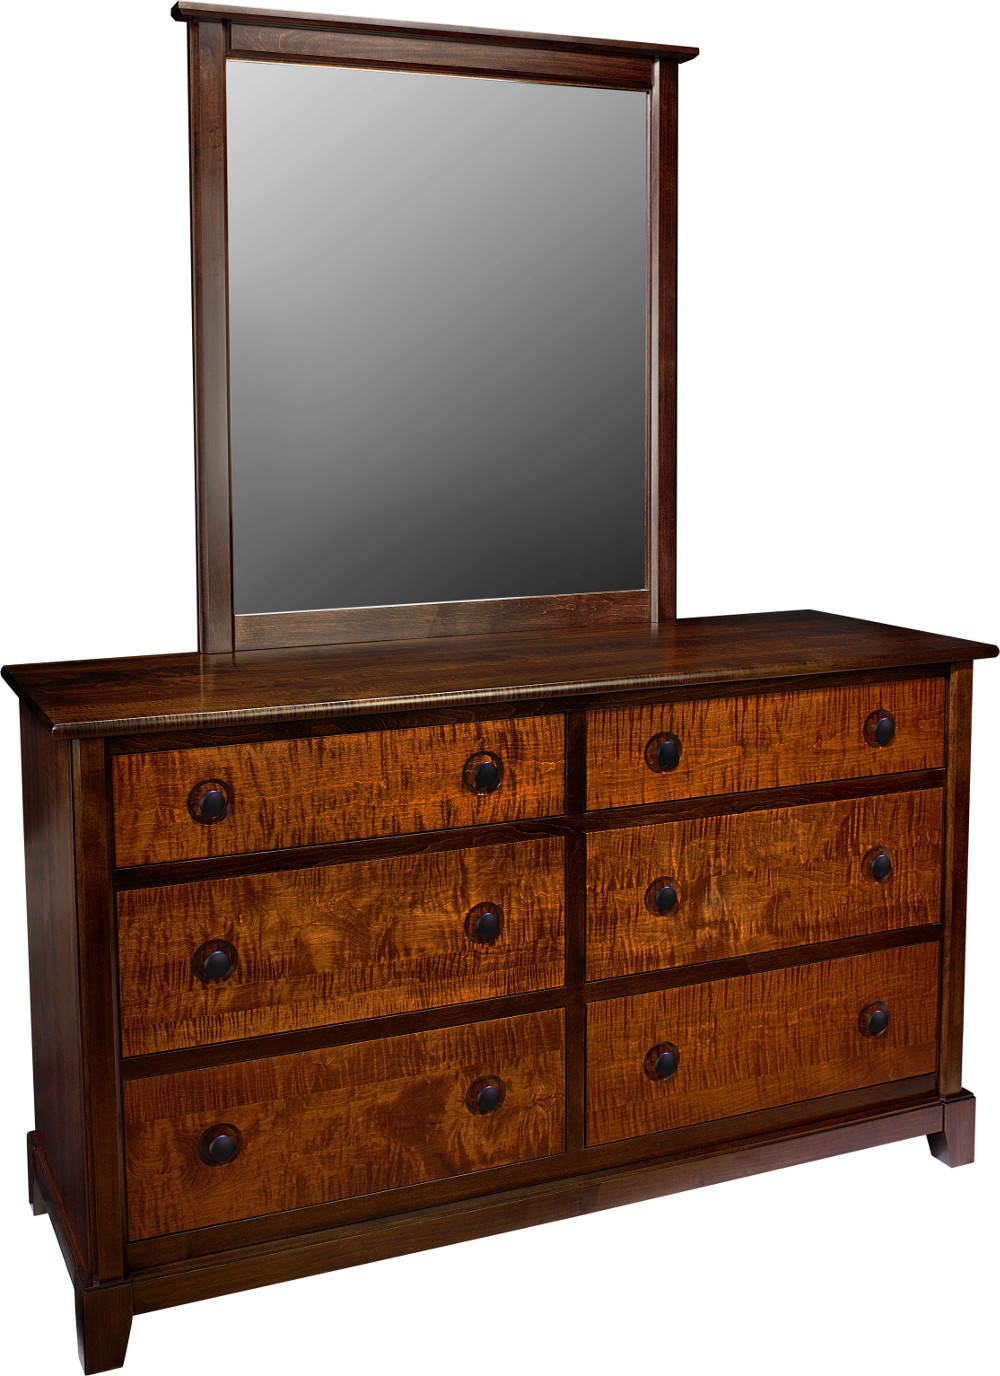 Chesapeaka Bedroom Set 6 Drawer Dresser